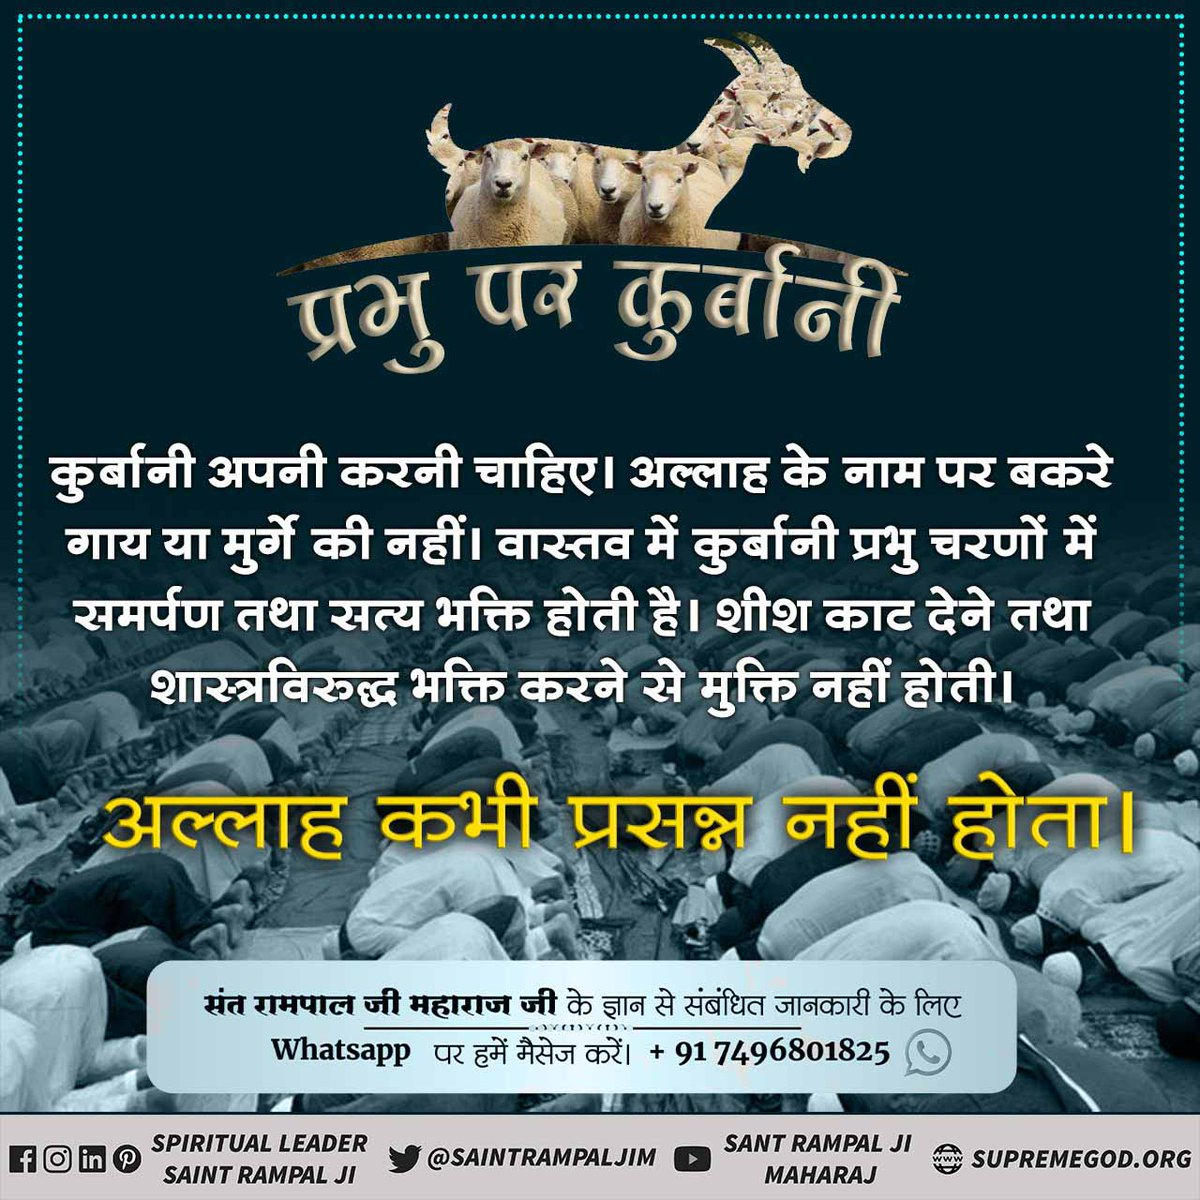 #ThursdayMotivation #ThursdayThoughts No slaughter of Allah If a person who had sacrificed innocent creatures in the name of Bakrid got a Jannat by cutting the neck of a goat, why not send Janma to his family after studying Kalma. @SaintRampalJiM